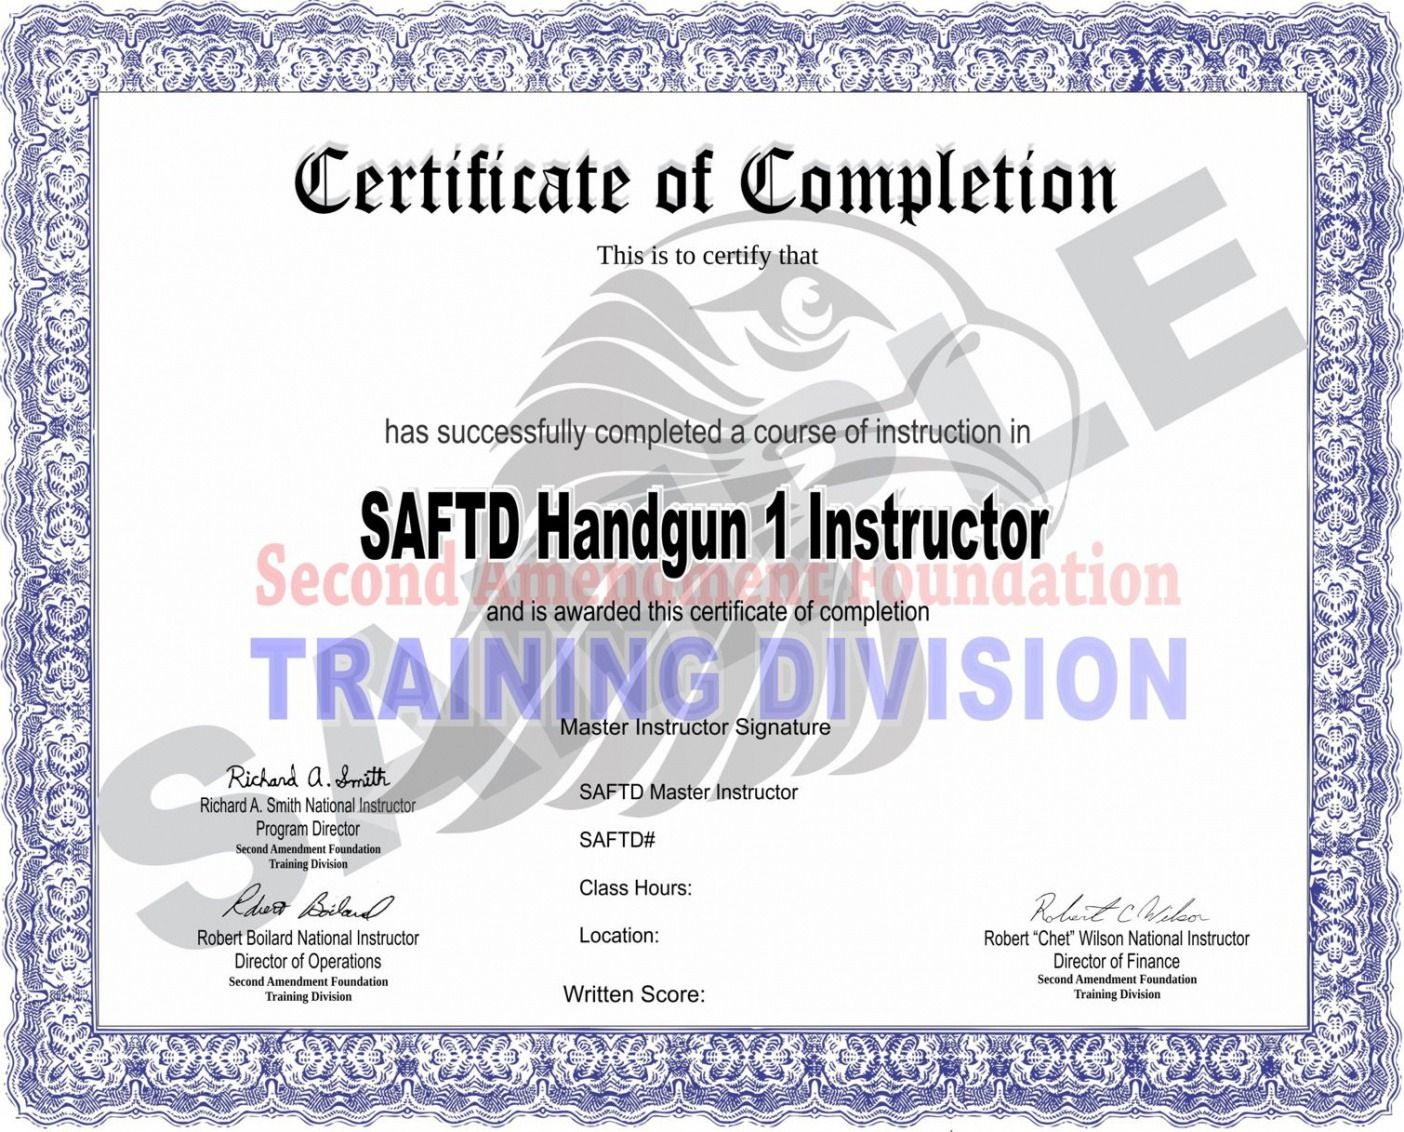 How To Make A Fall Protection Training Certificate Template Doc In 2021 Training Certificate Certificate Templates Fall Protection Training Fall protection training certificate template